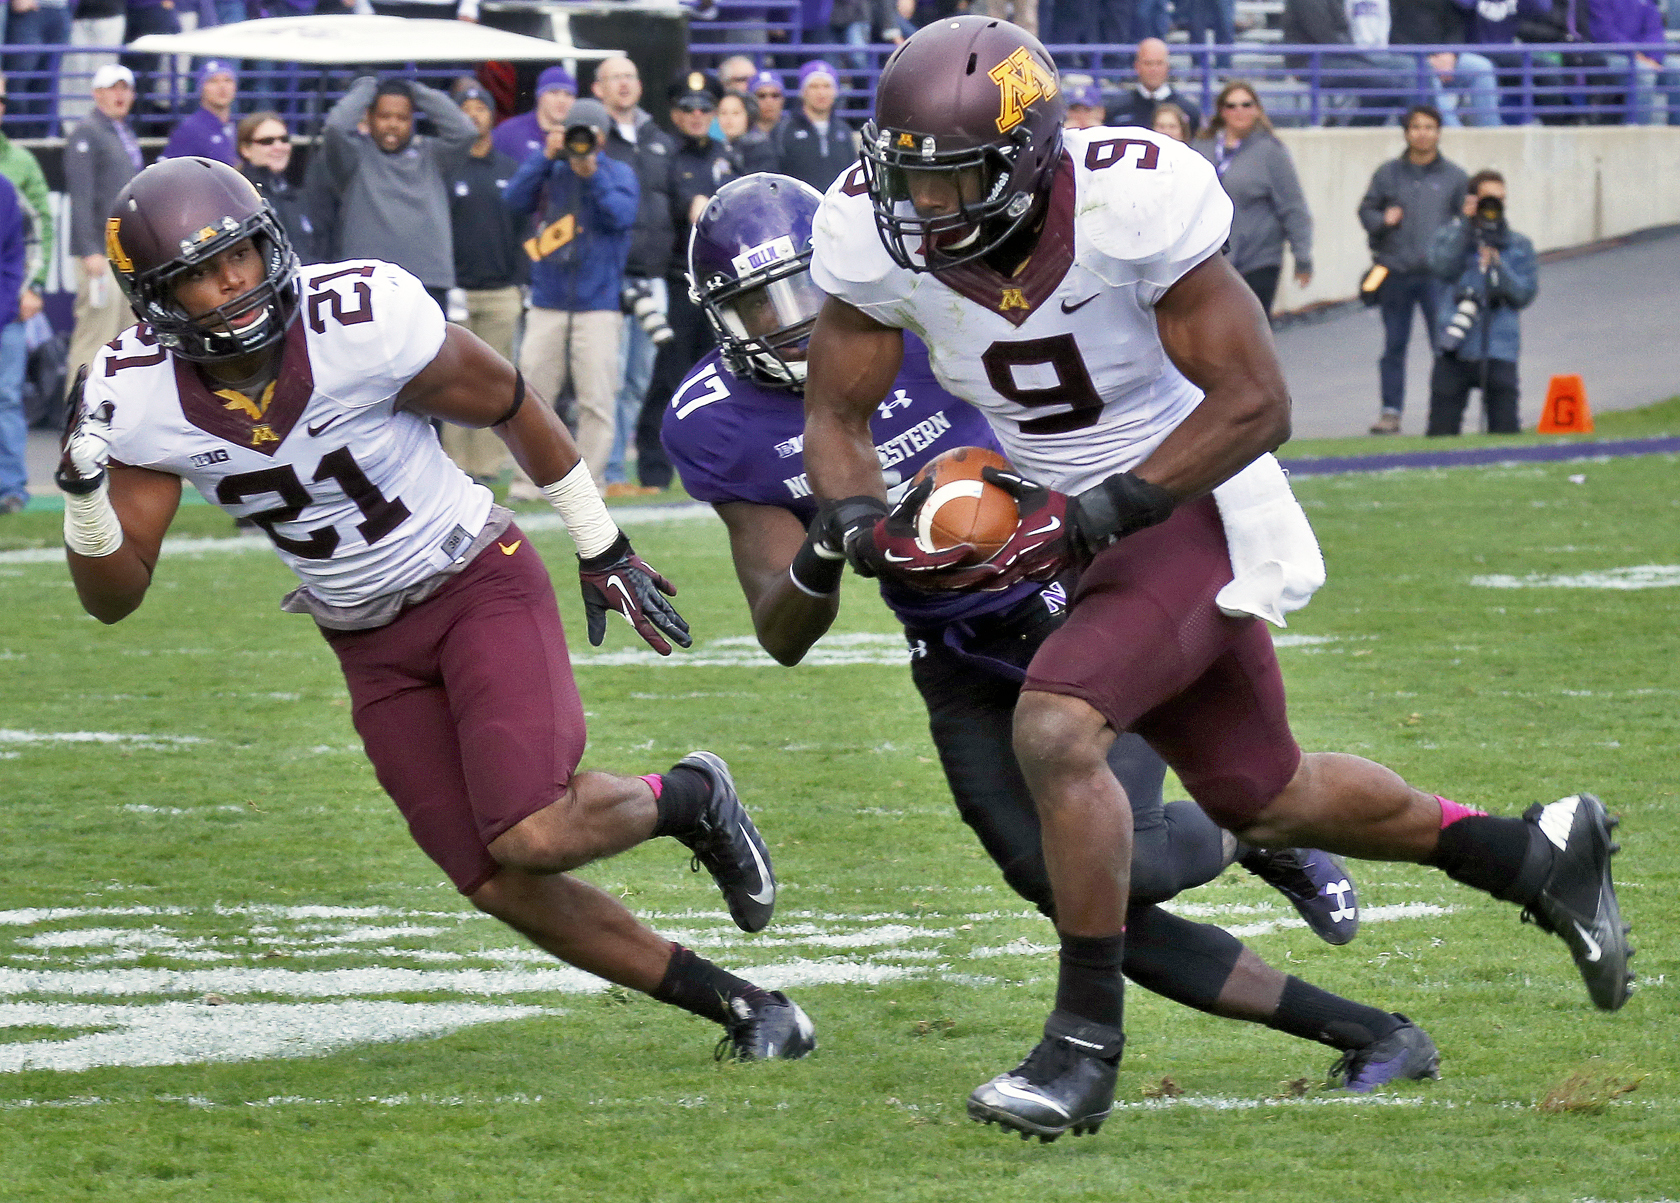 Minnesota Gophers vs. Northwestern Wildcats football. Minnesota won 20-17. Minnesota linebacker James Manuel (9) headed for the end zone and a touchdown after intercepting a Northwestern pass in 2nd half action putting the Gophers ahead to stay 14-7. . (